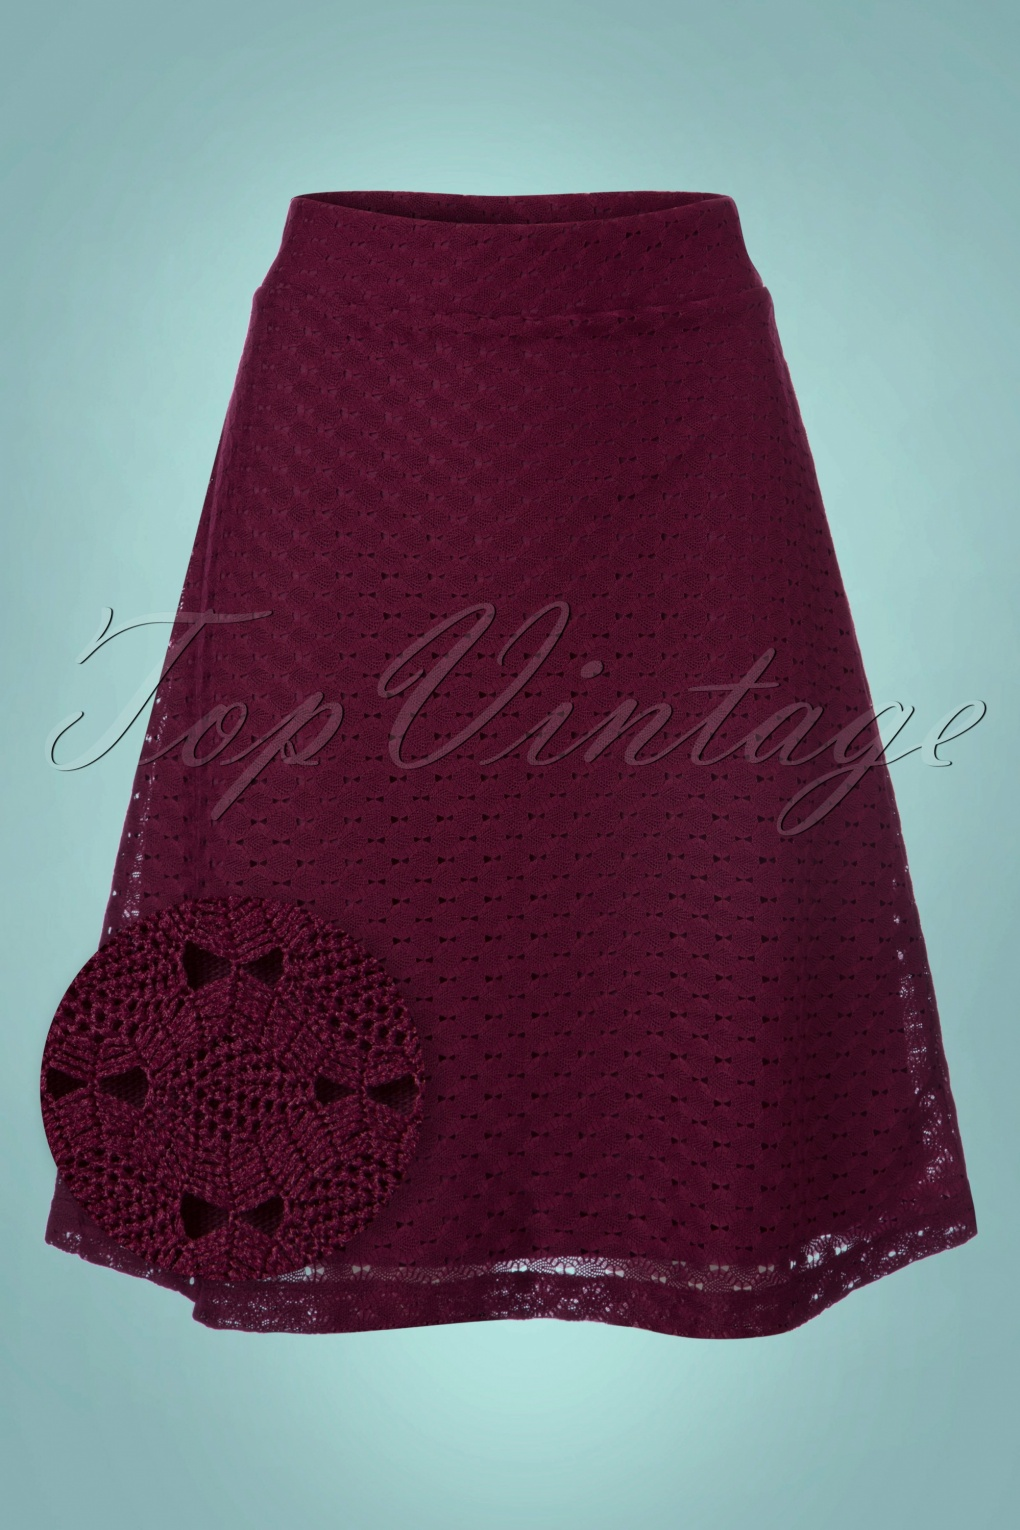 Retro Skirts: Vintage, Pencil, Circle, & Plus Sizes 60s Gul Skirt in Aubergine £44.45 AT vintagedancer.com